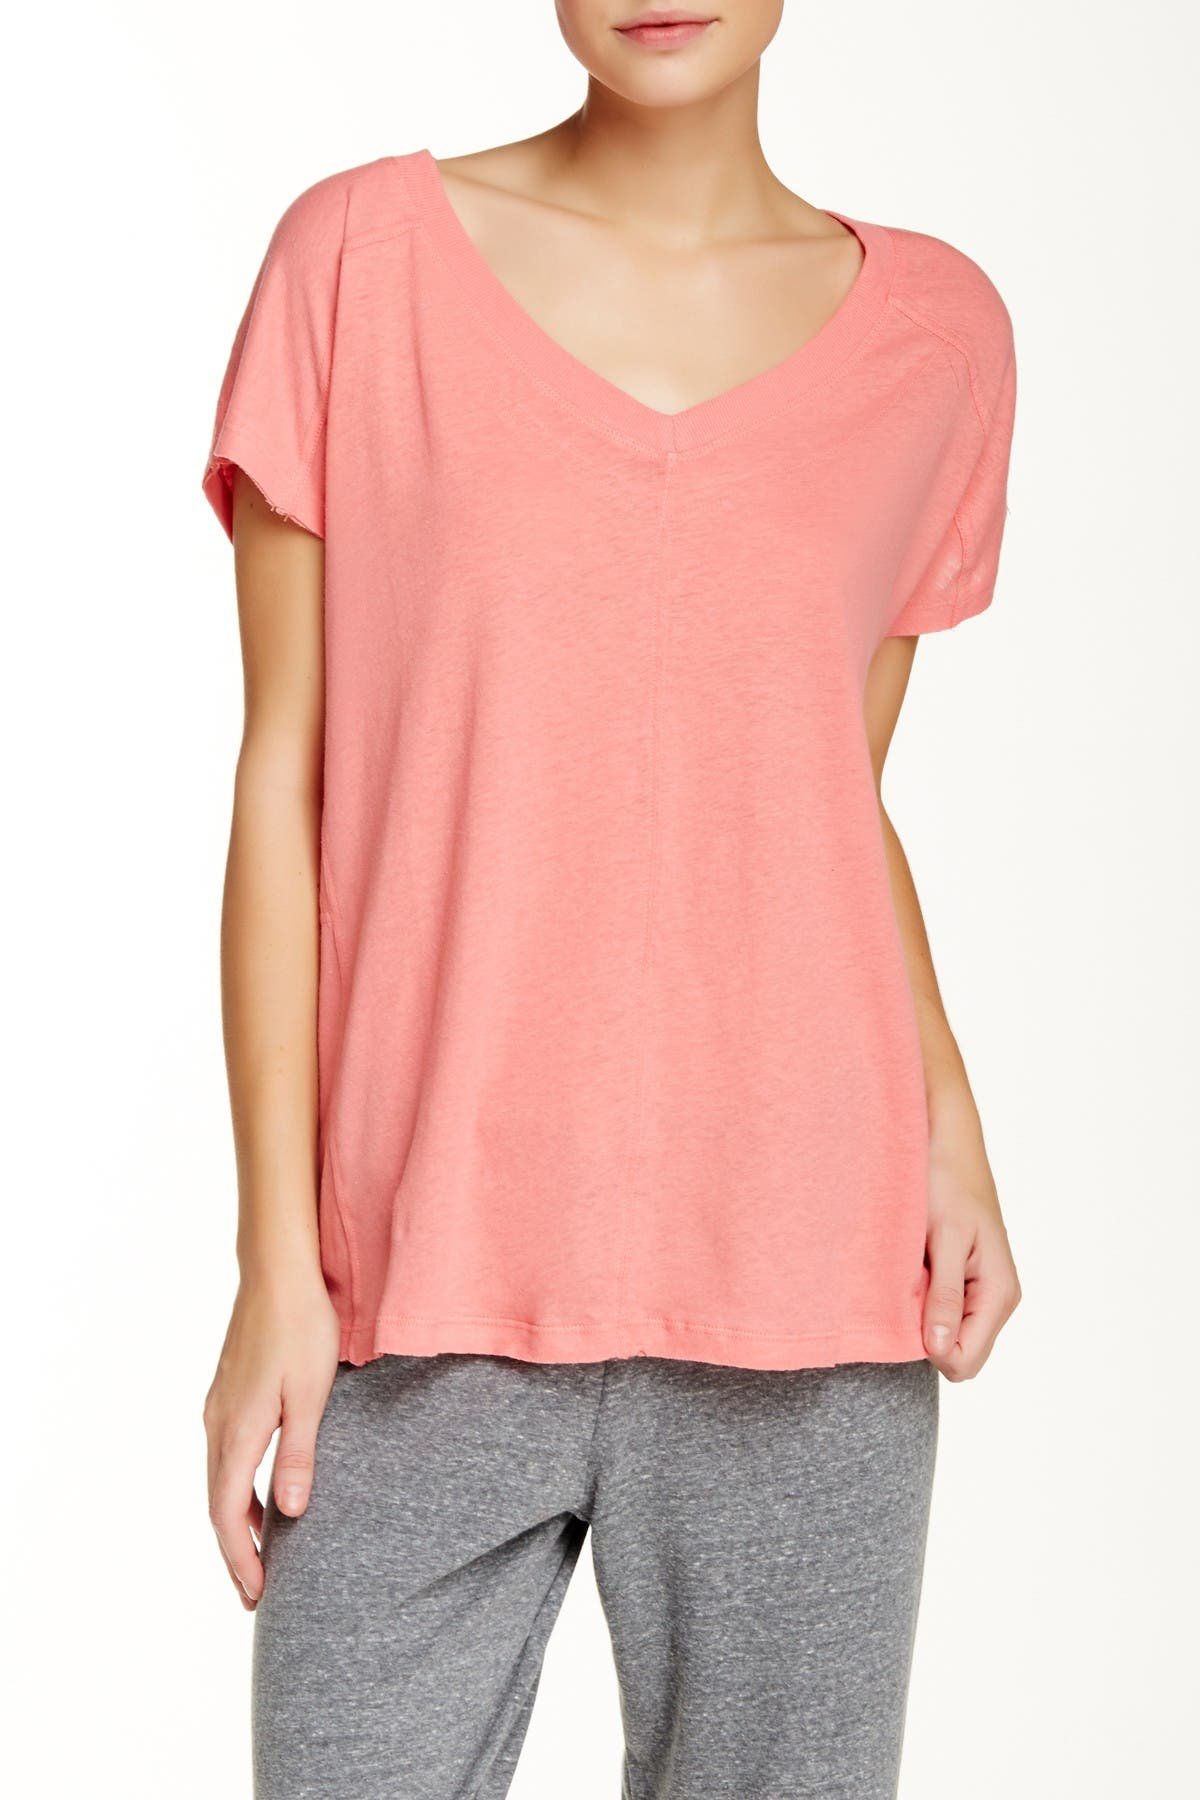 Image of Honeydew Intimates Take Ten Linen Blend T-Shirt